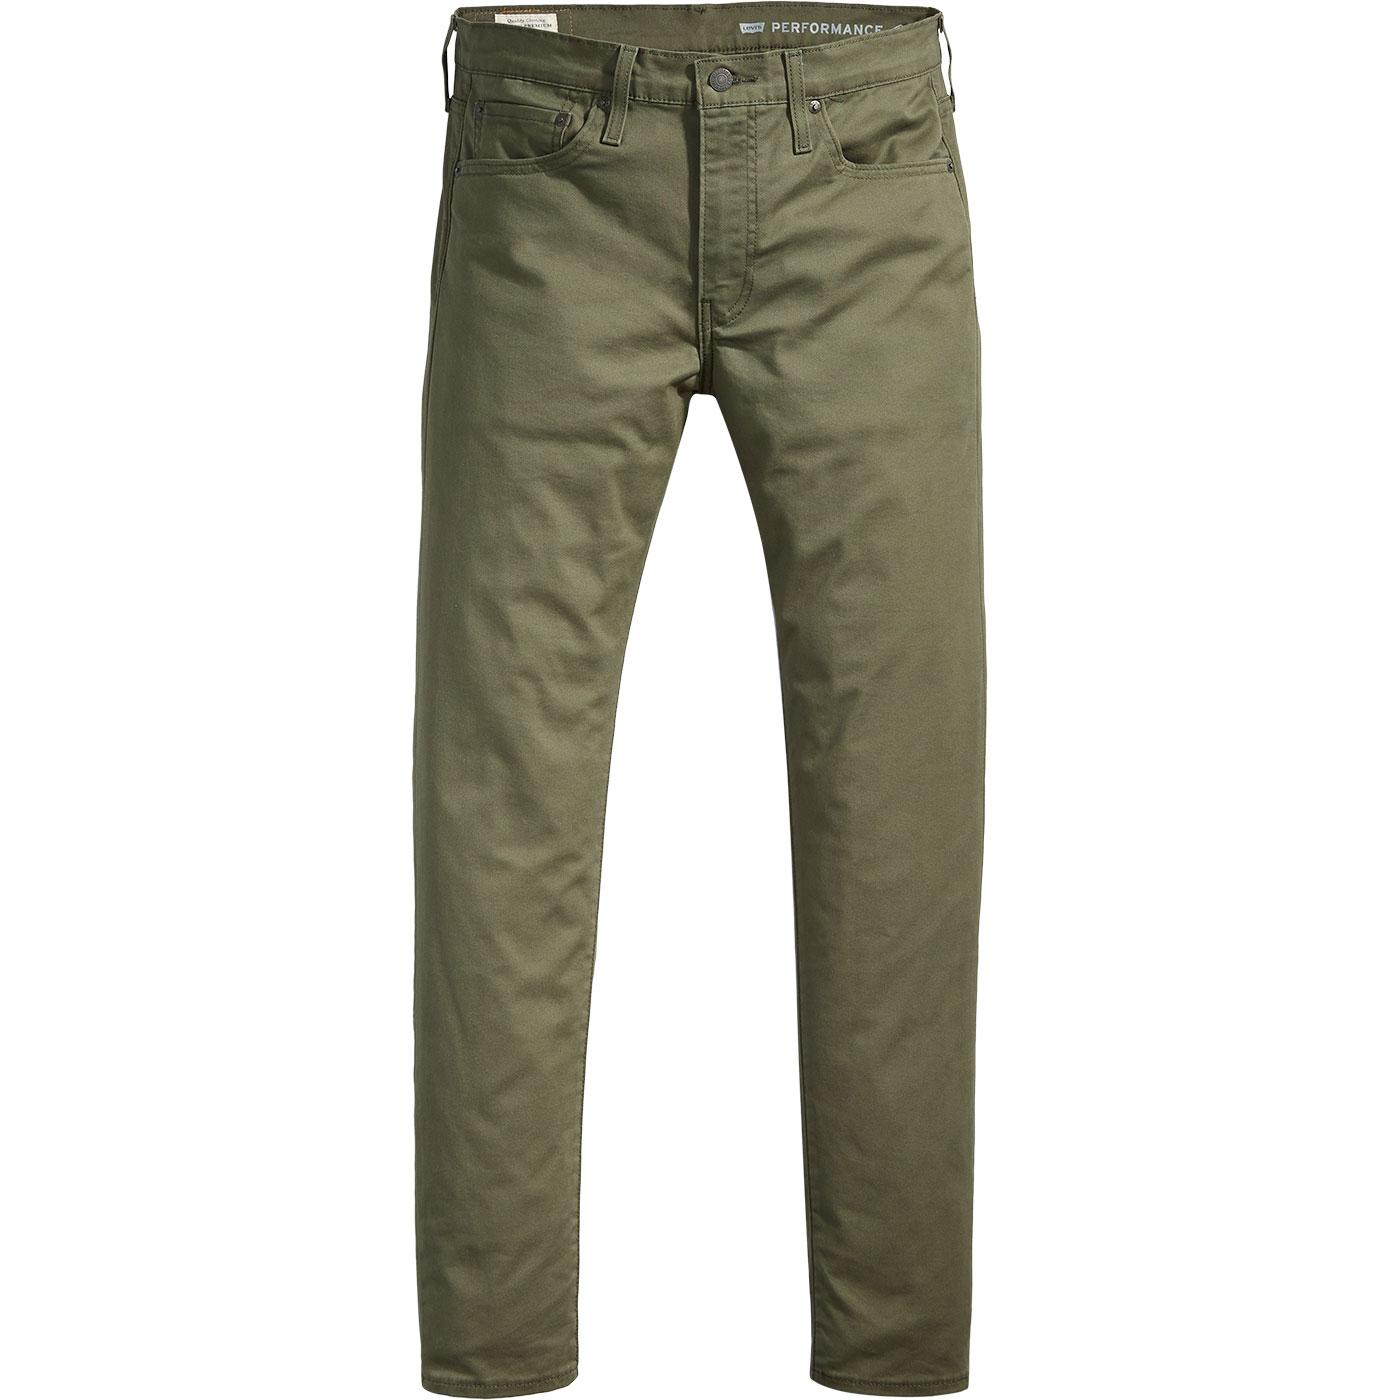 LEVI'S 512 Men's Slim Taper Chinos (Olive Night)